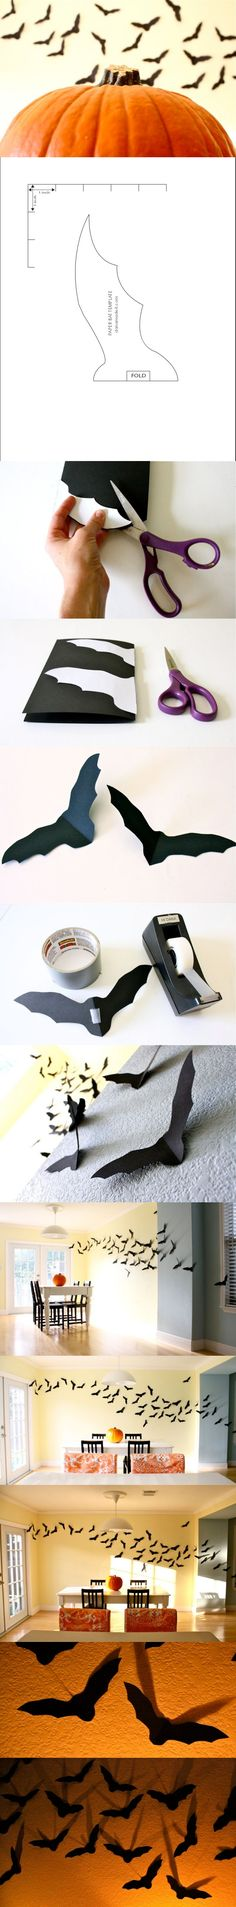 Waited until the last minute? Give your home-sweet-home a decidedly devilish air with these easy do-it-yourself Halloween decorating ideas. Halloween DIY Decorations Ideas Tin Can Luminaries Floating Witch Hat Luminaries Black Cat O'Lanterns Floating Ghost Spooky Halloween Candle Light Cups Bloody Handprint Window Clings DIY Glow in the Dark Pumpkins Hanging Bat Chandelier Flying Bats … Continue reading 10 Halloween DIY Decorations Ideas →